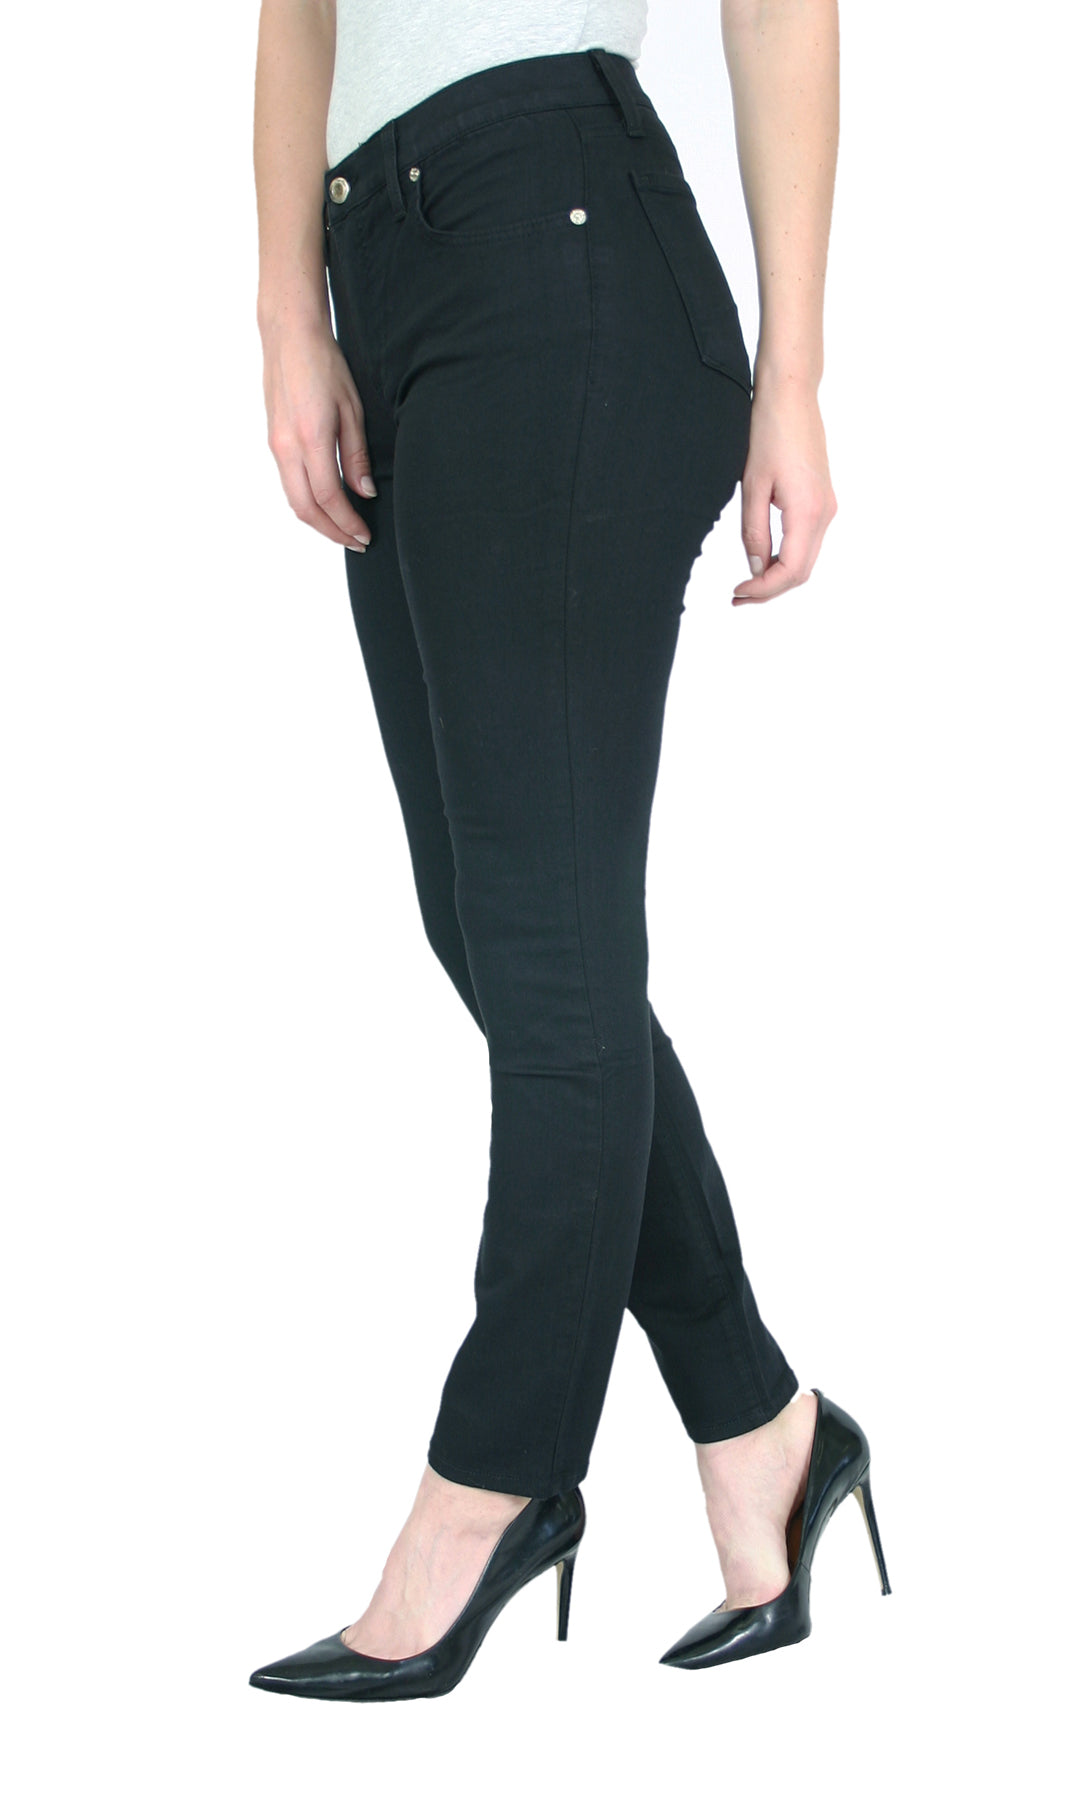 TrueSlim™ Black Satin Twill Skinny Women Jeggings